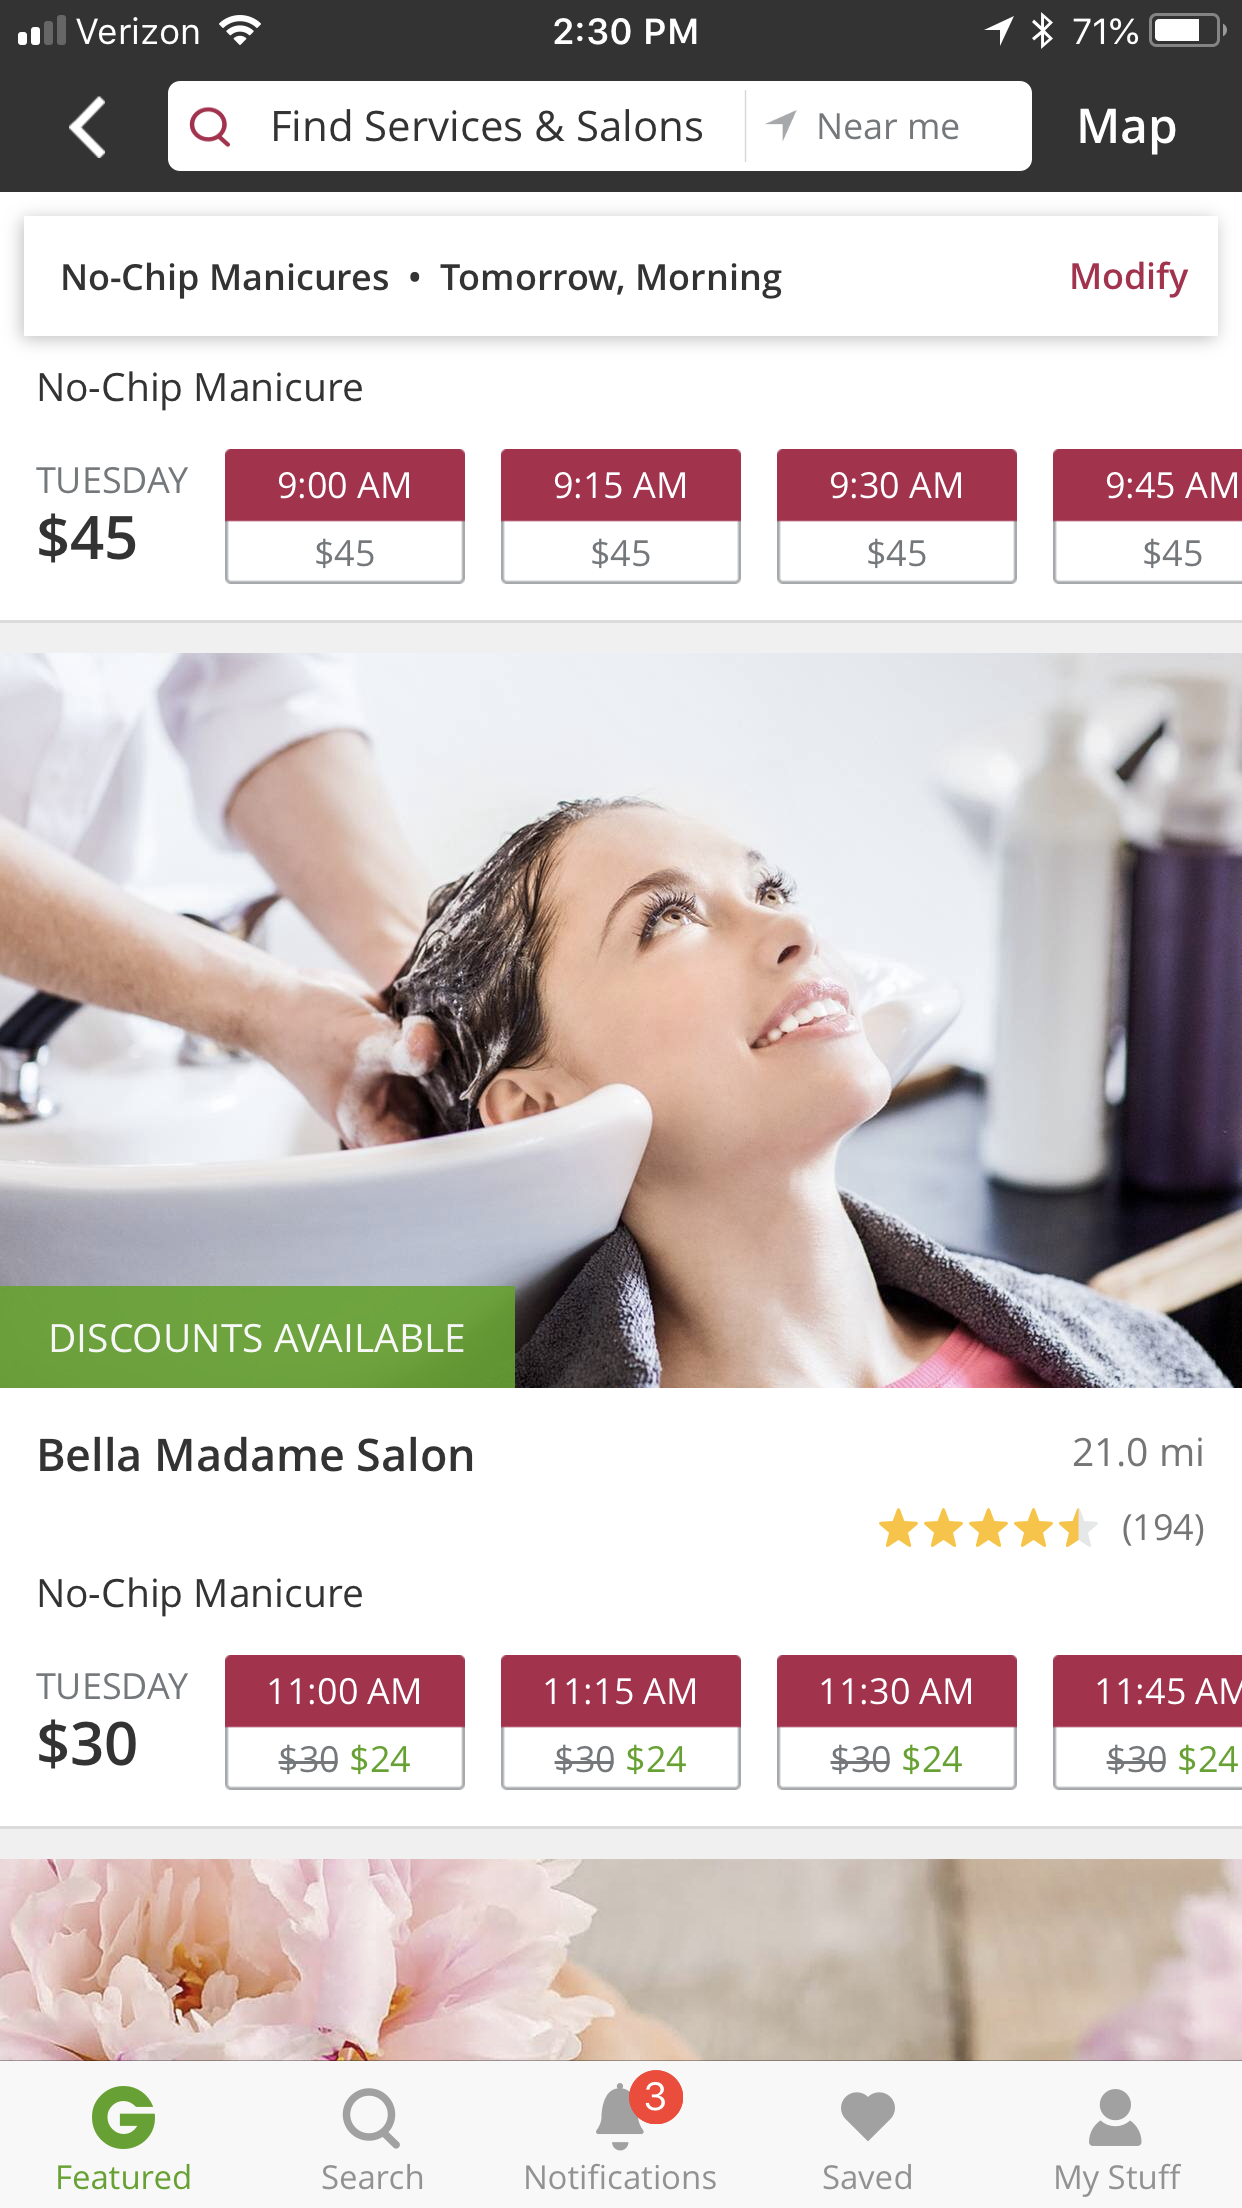 Book your next beauty service with Groupon's BeautyNow Booking. Schedule your services on your schedule, not theirs.